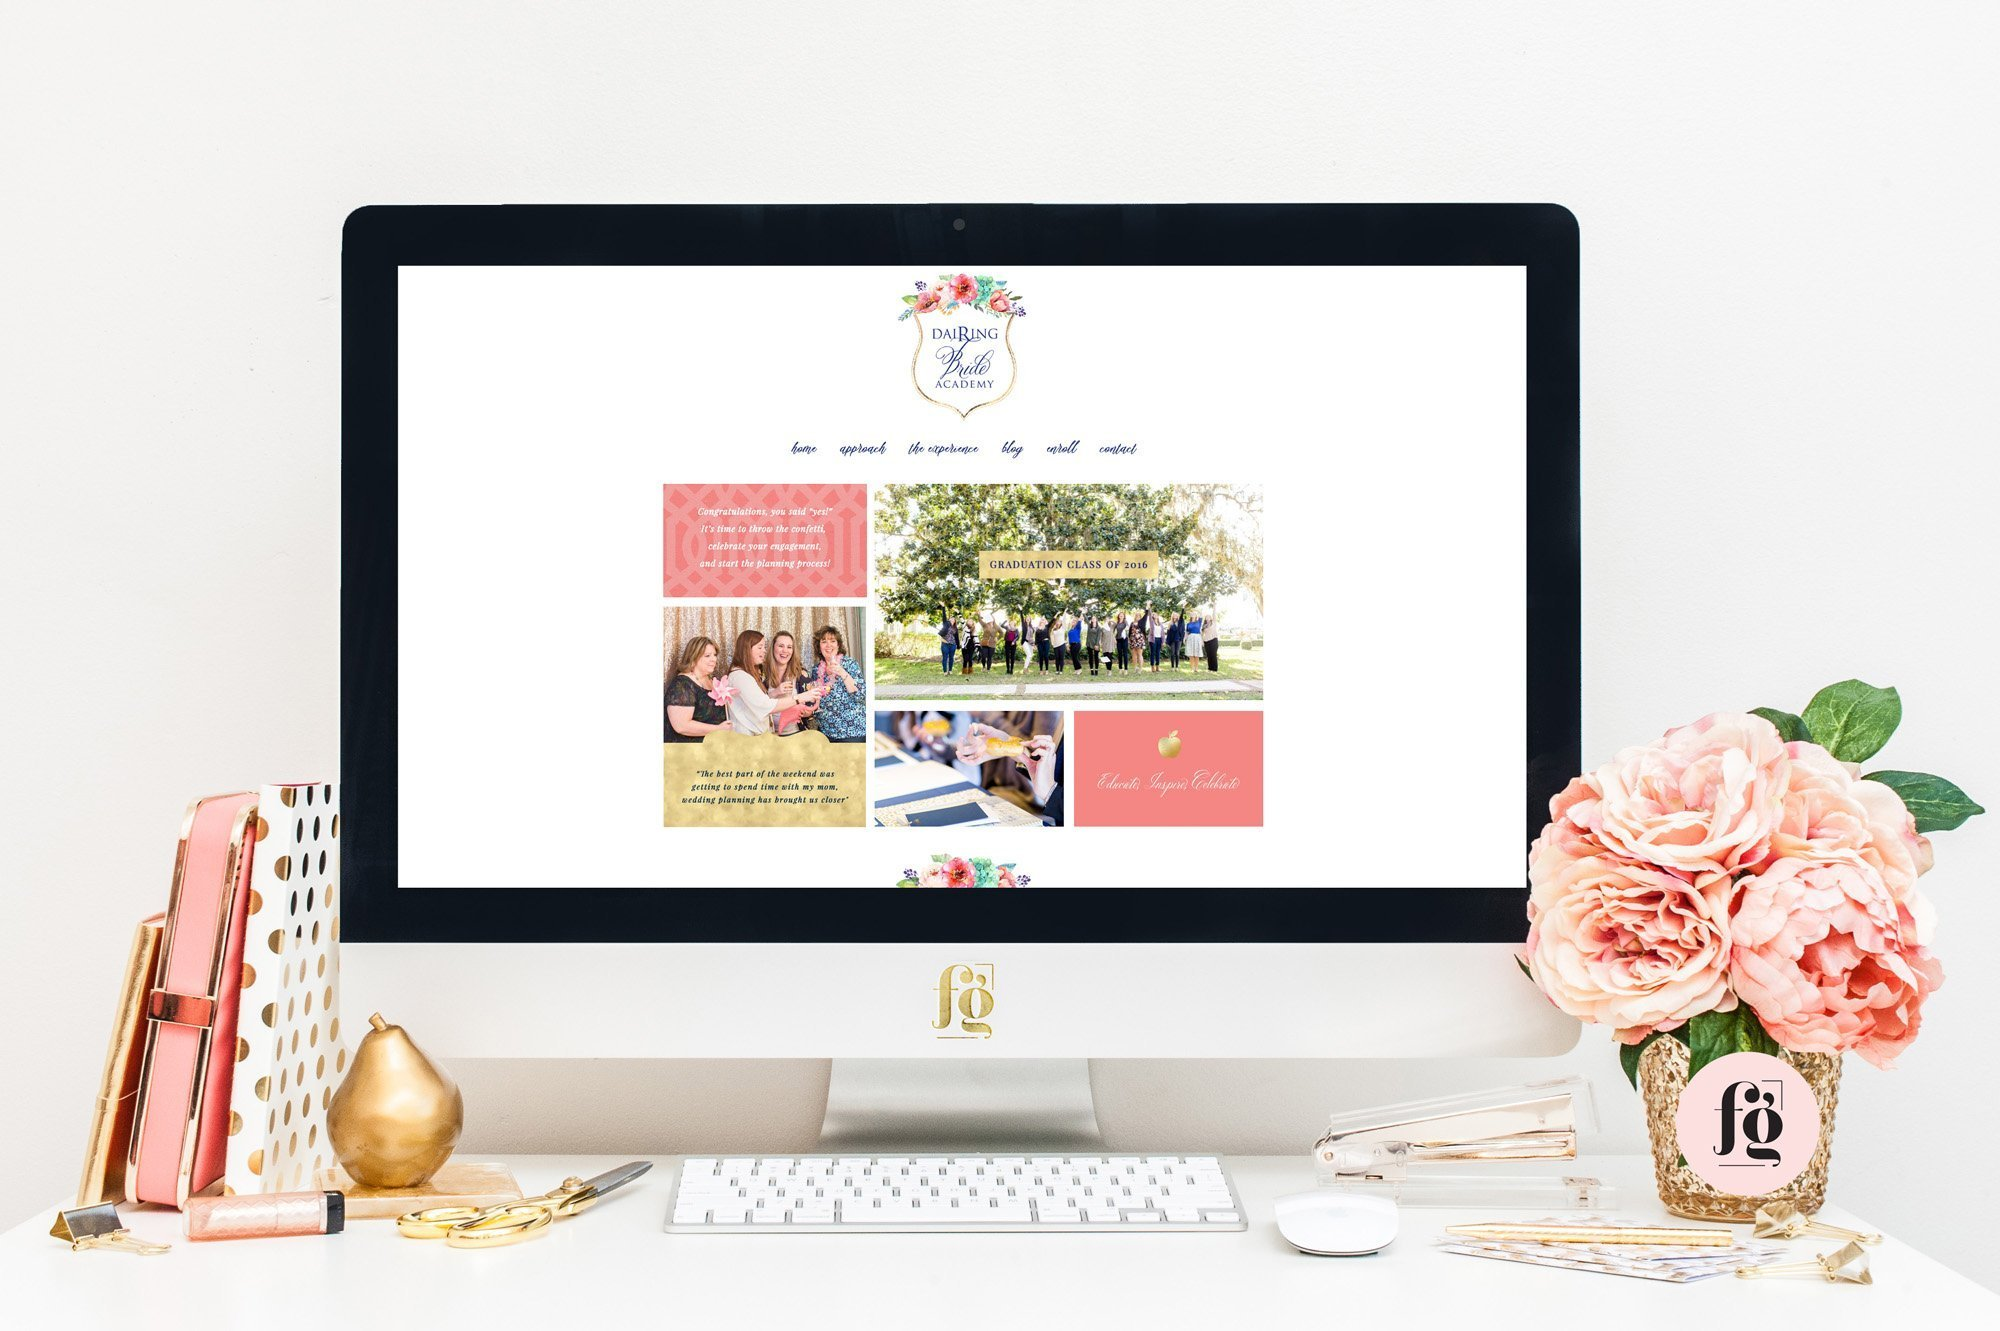 Website Design for Dairing Bride Academy by Fancy Girl Design Studio